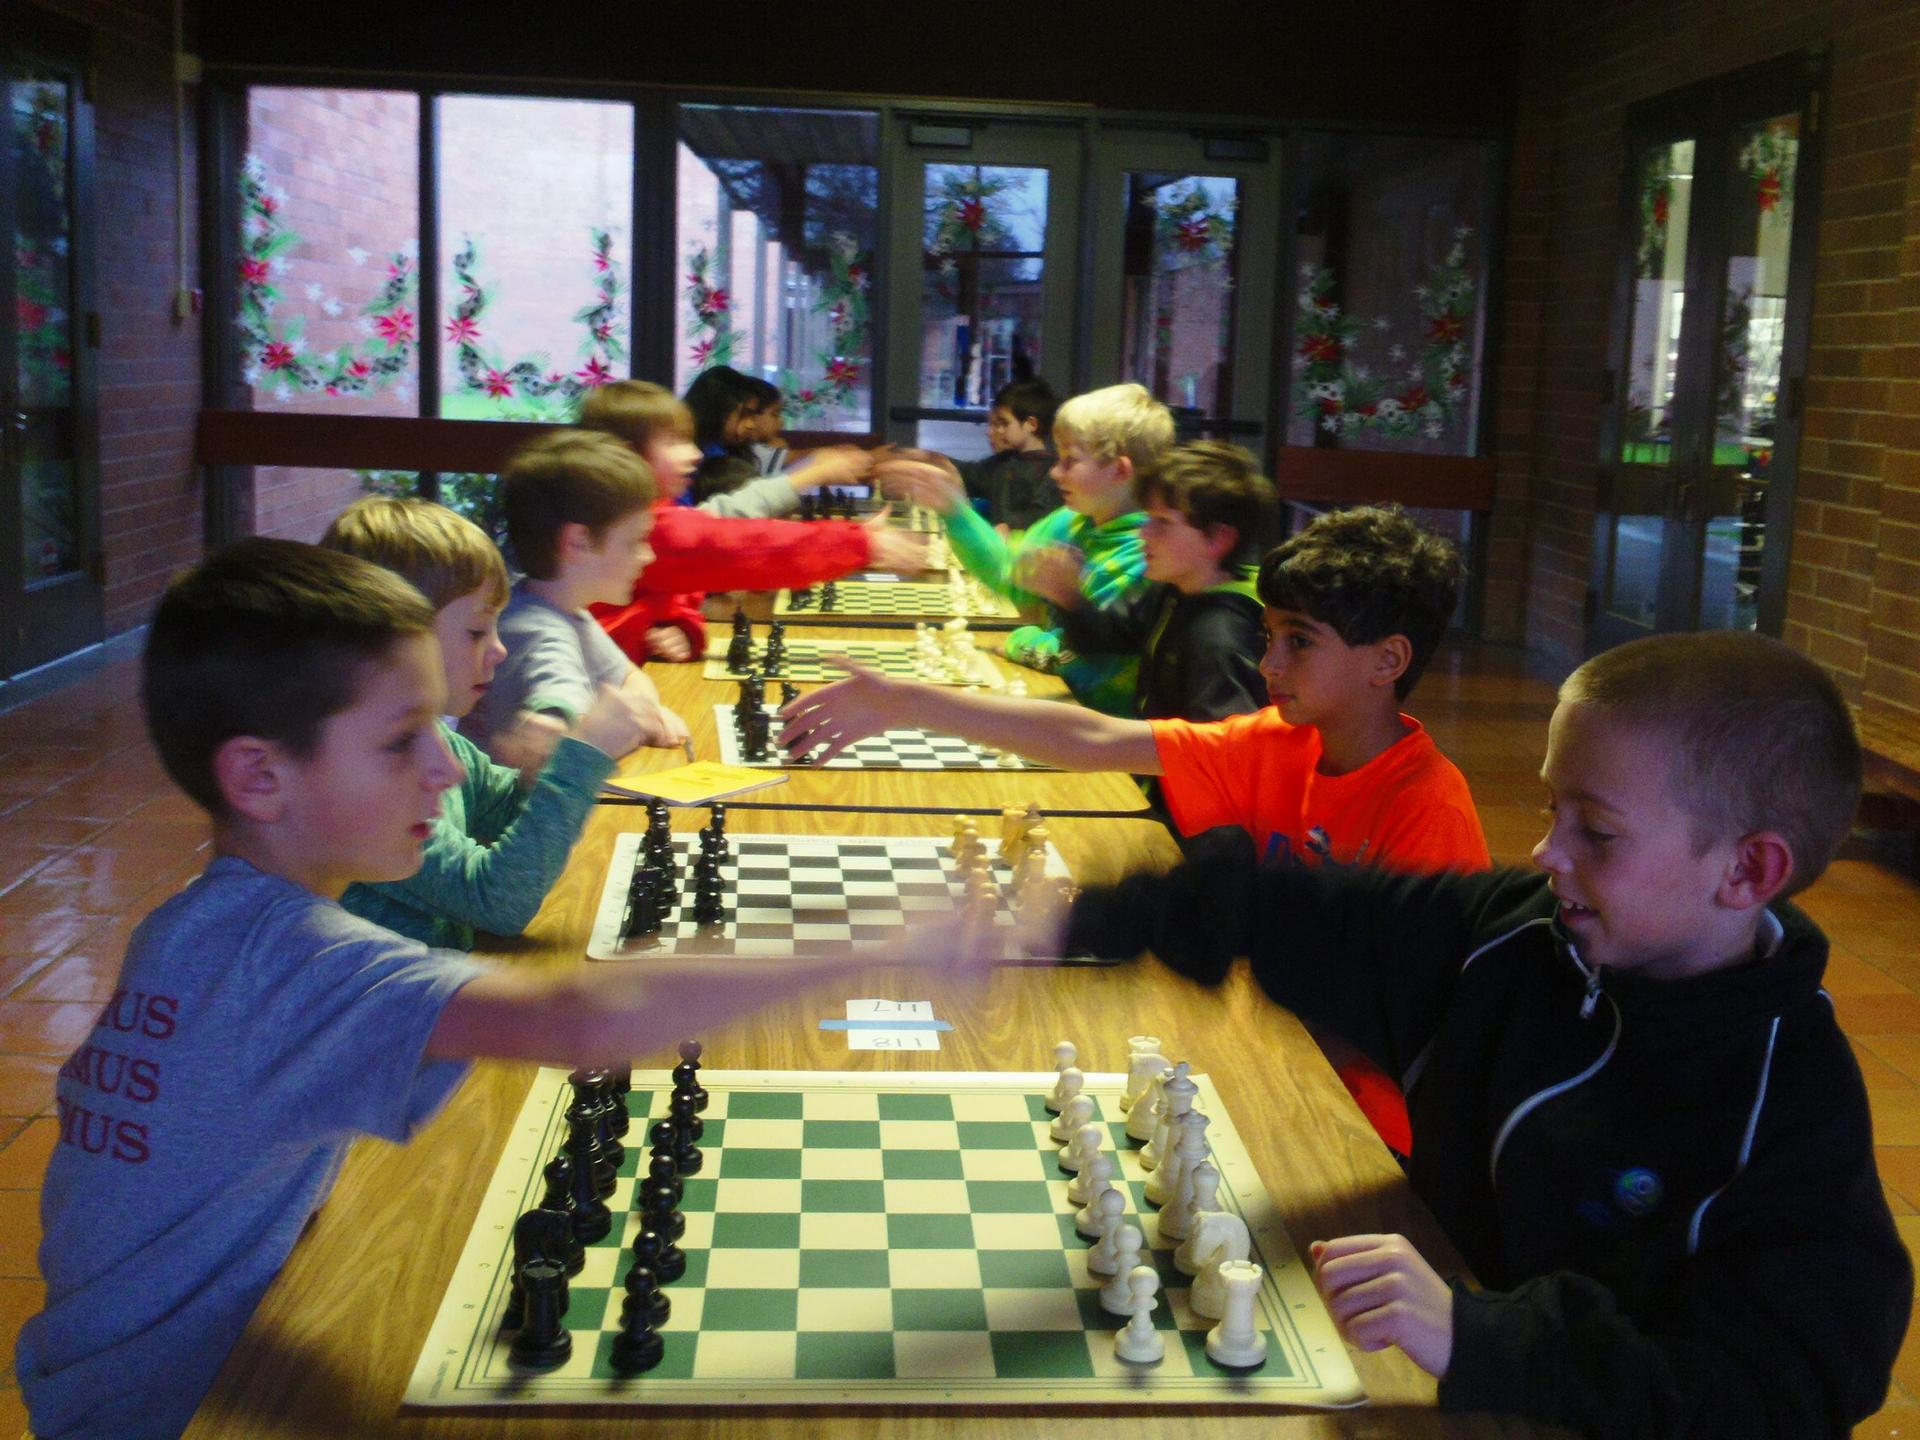 children shaking hands prior to chess matches